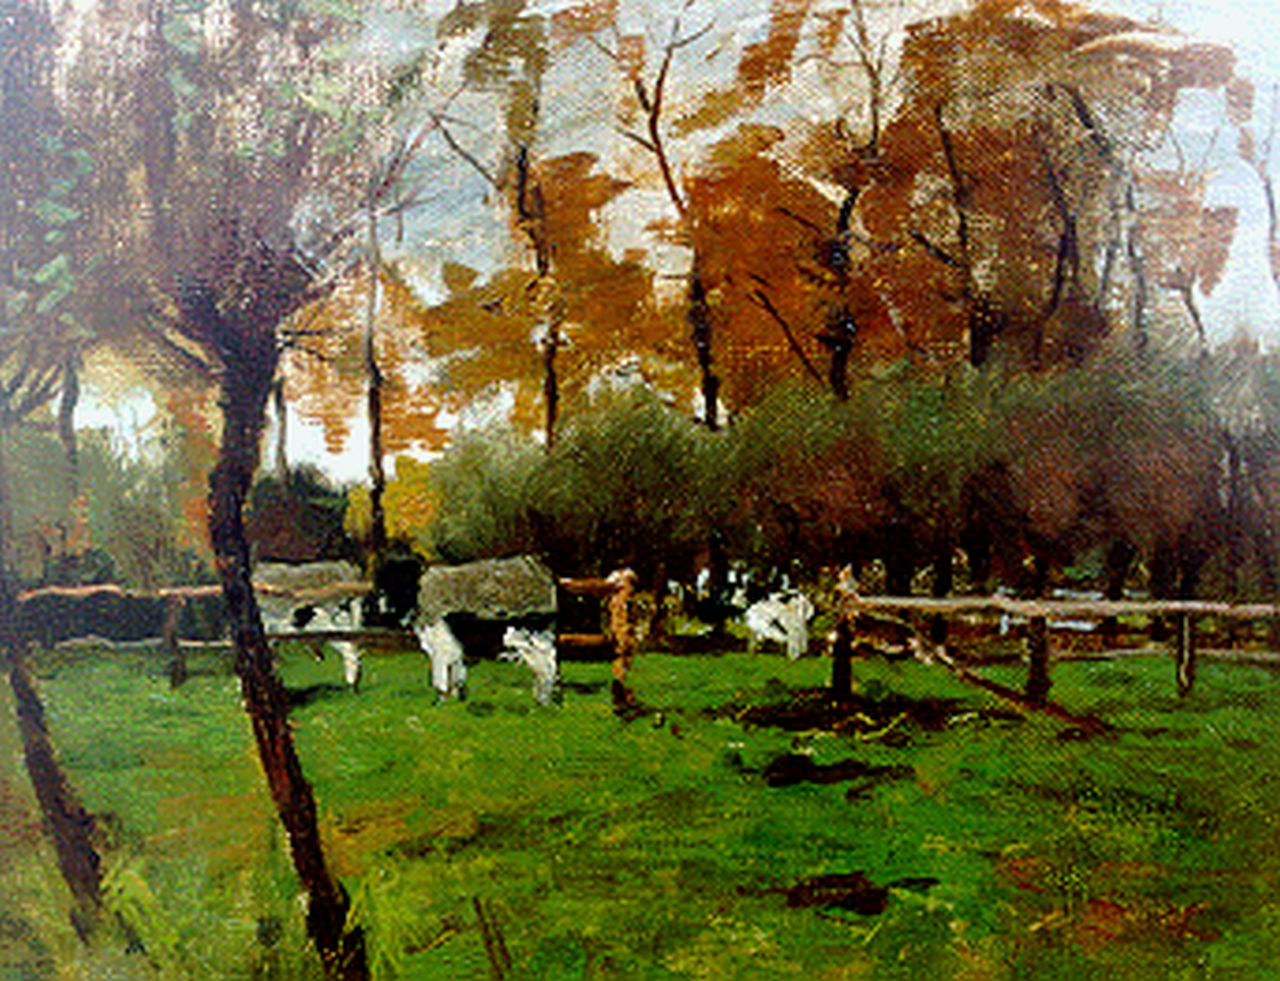 Poggenbeek G.J.H.  | George Jan Hendrik 'Geo' Poggenbeek, Cows by a fence, oil on canvas laid down on panel 24.4 x 32.4 cm